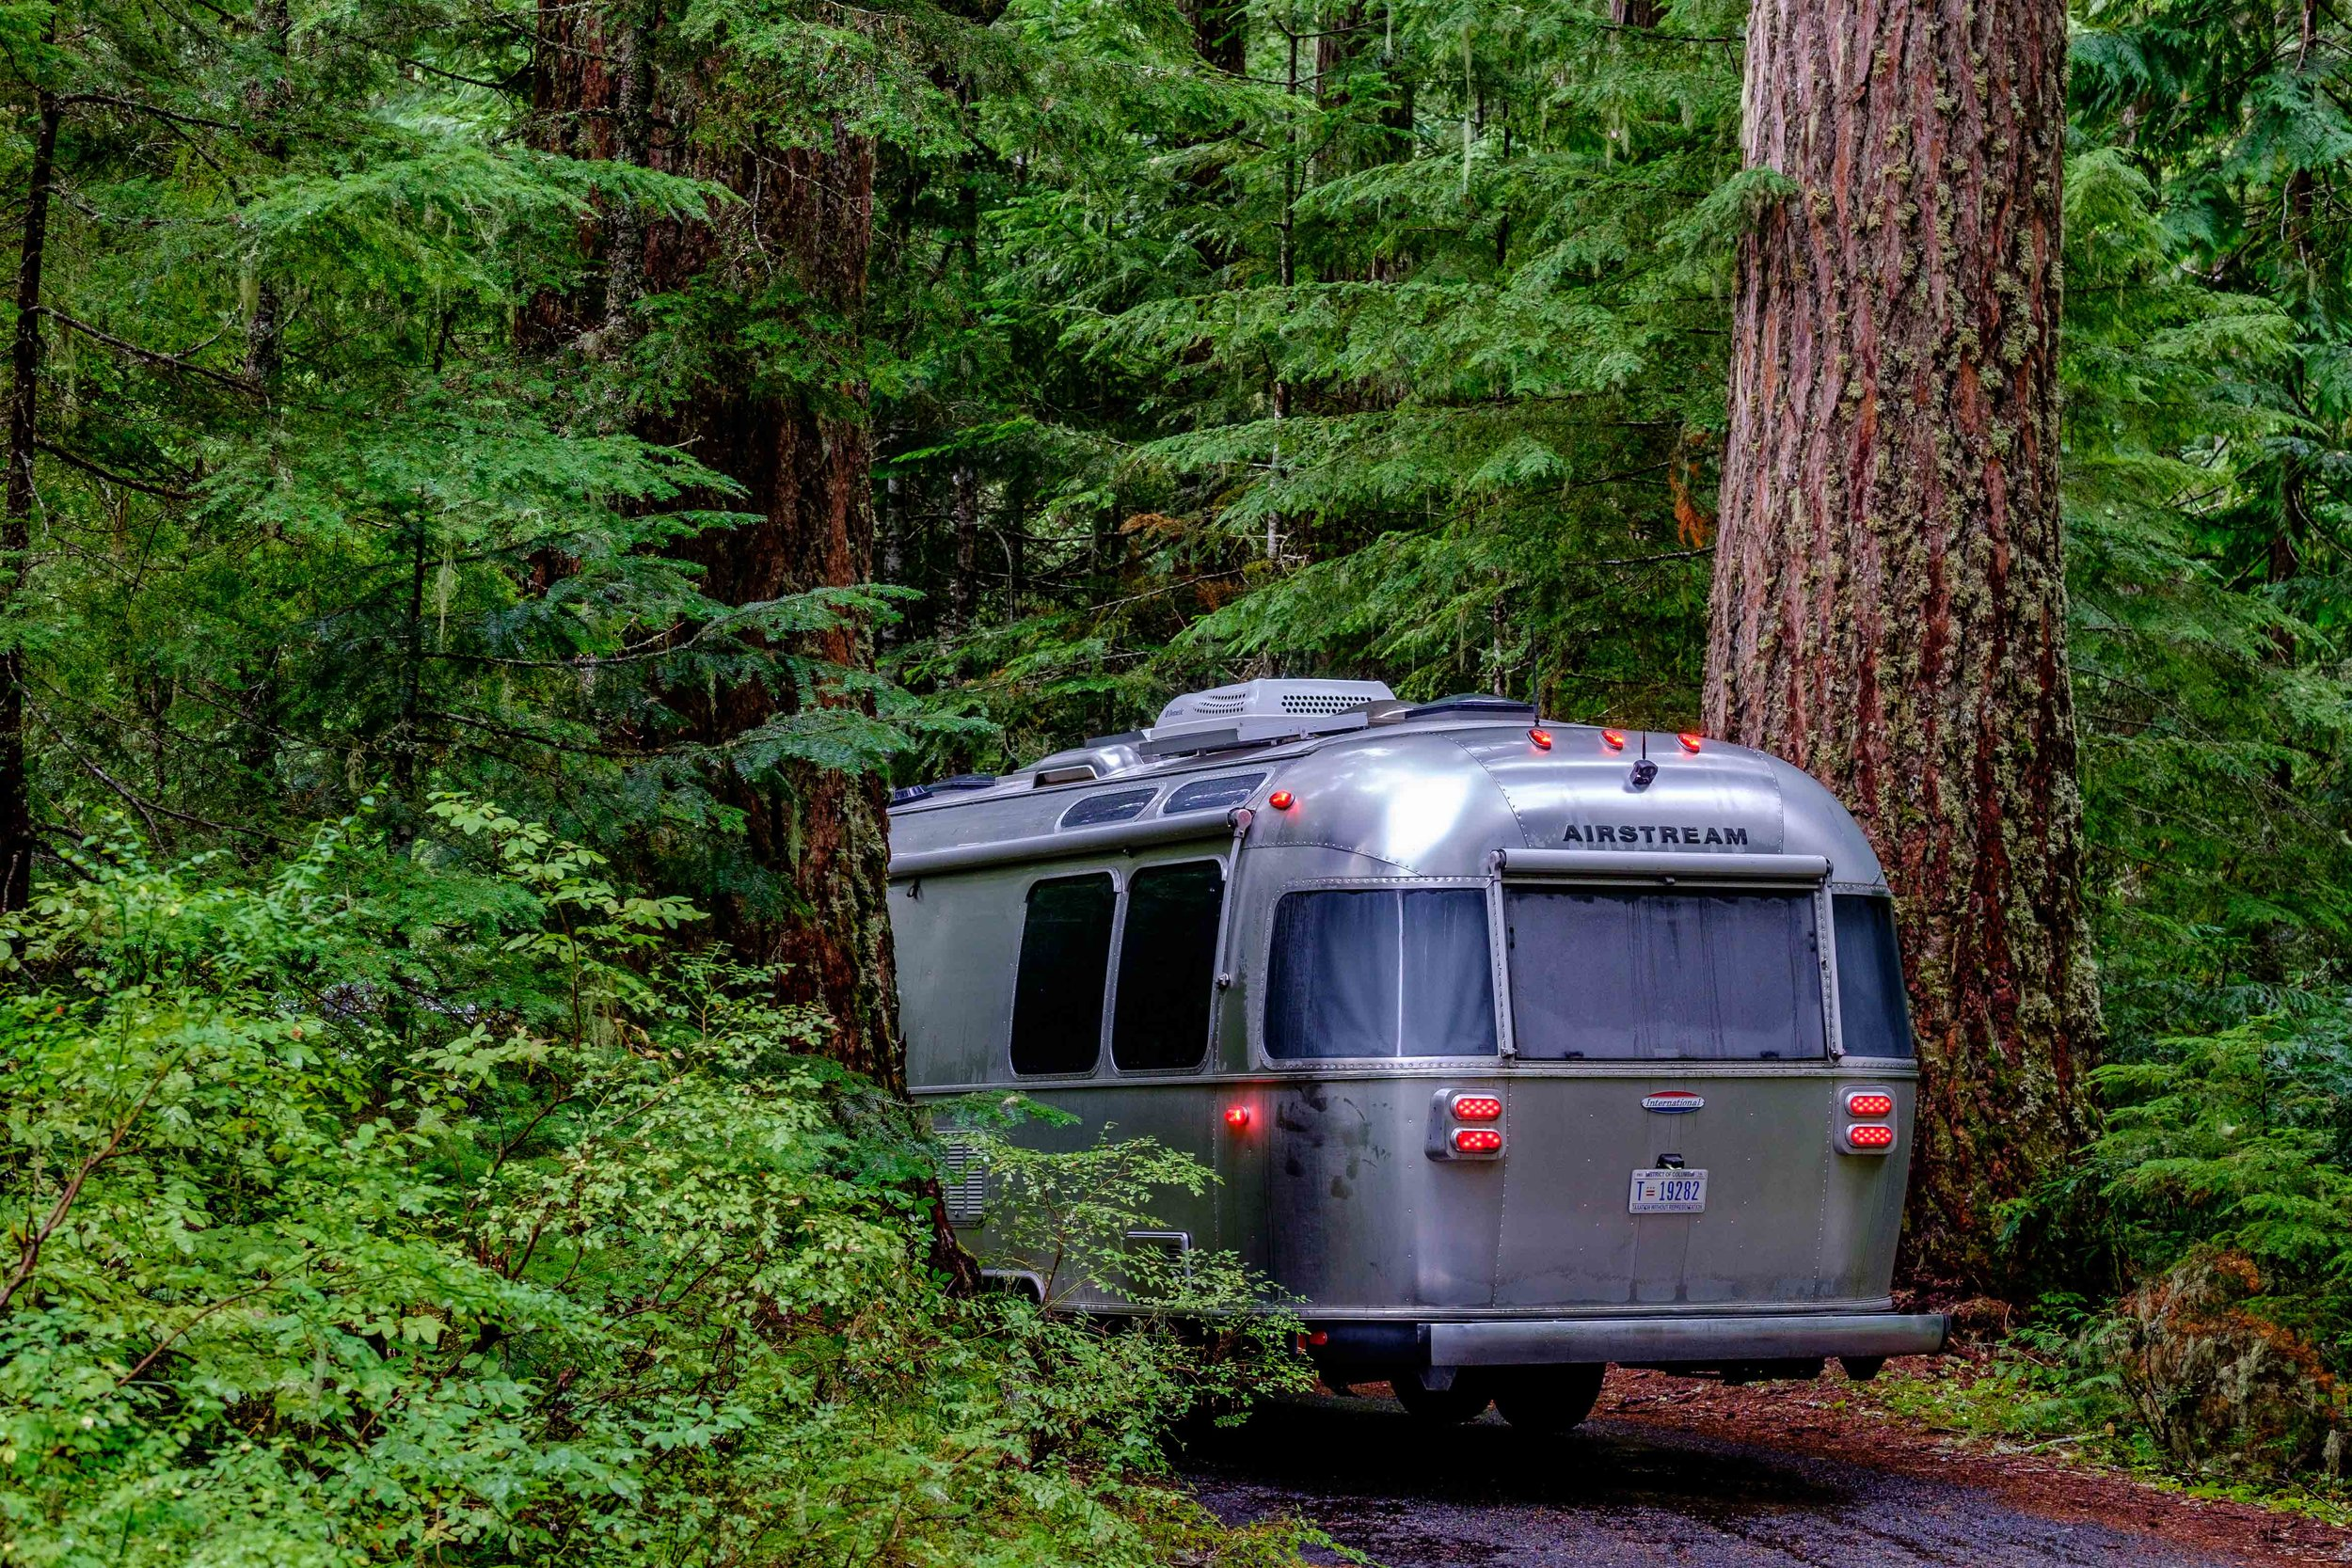 Wally the Airstream found camping bliss at the Cougar Rock Campground in the Paradise section of Rainier.